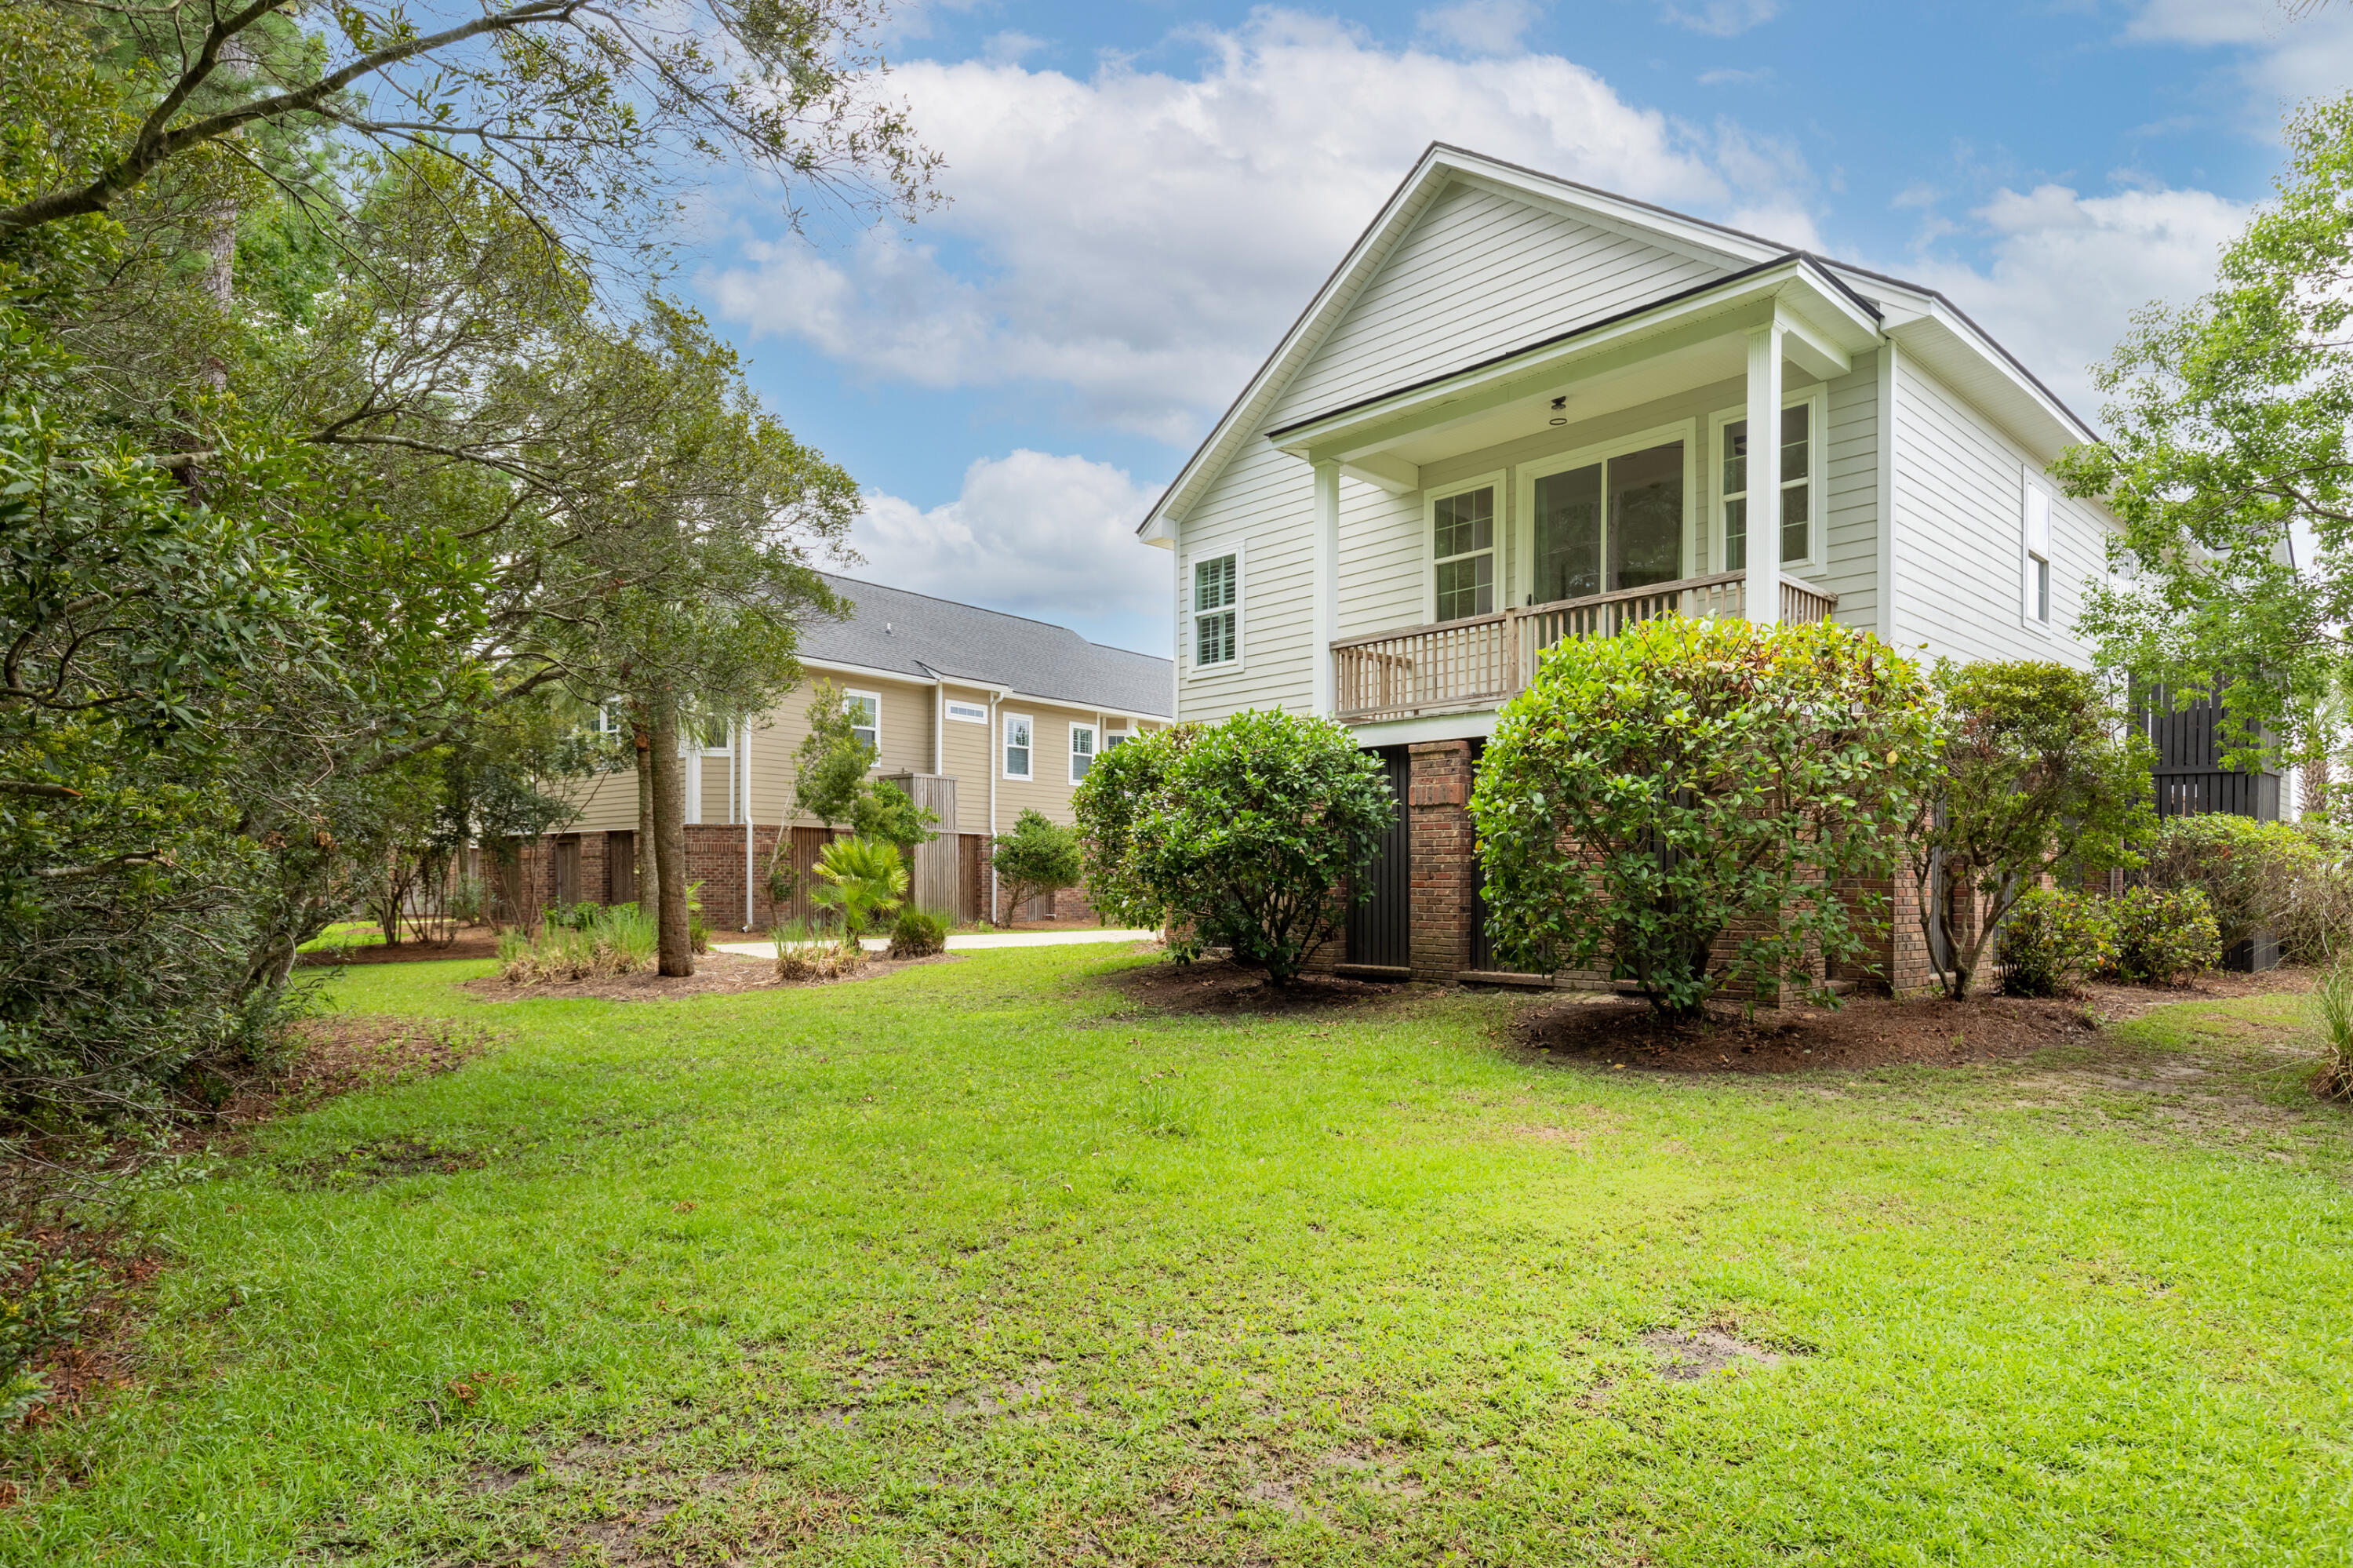 Rivertowne Country Club Homes For Sale - 1725 Rivertowne Country Club, Mount Pleasant, SC - 37